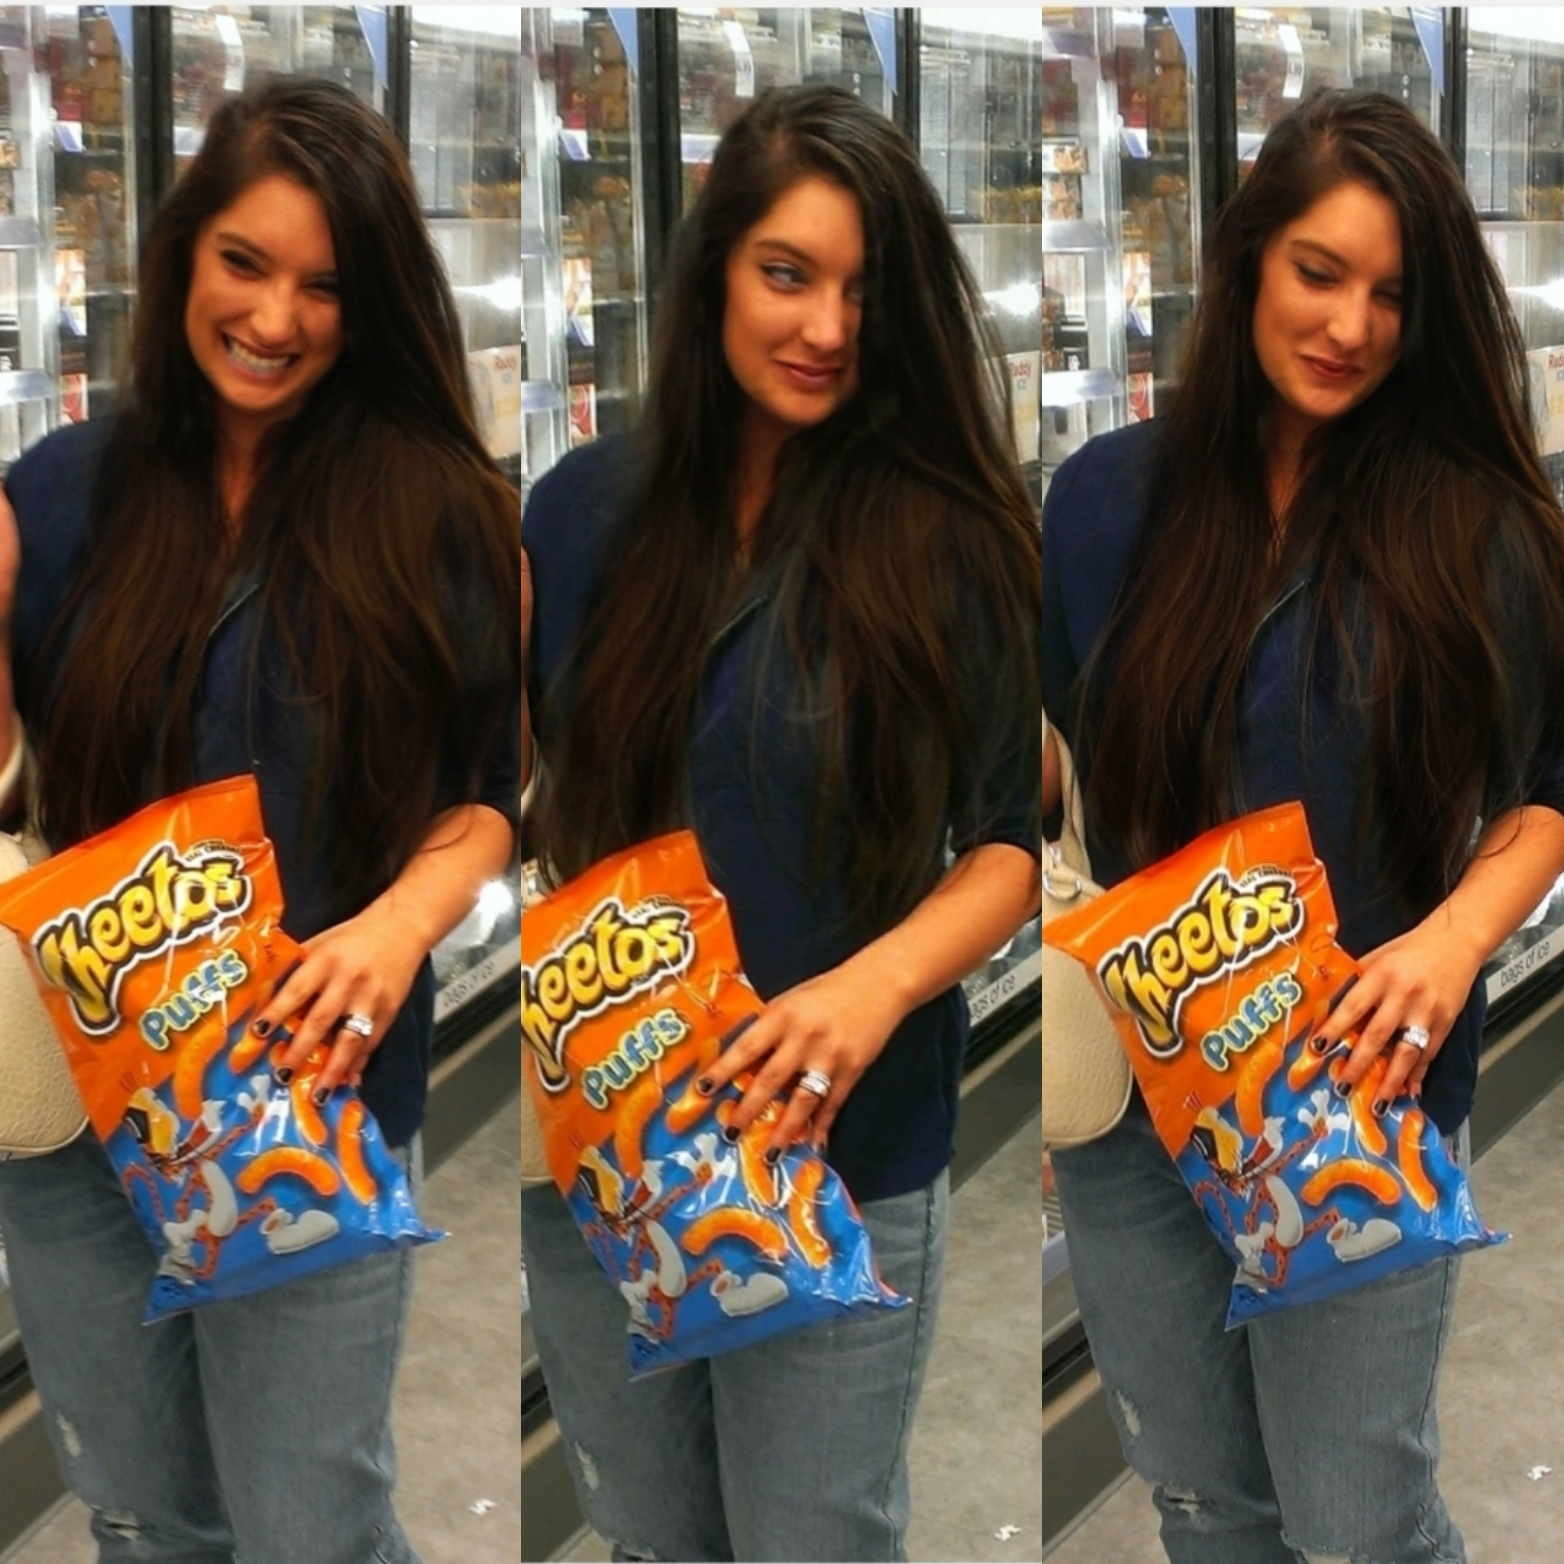 Malia May Johnson Cheetos Collage